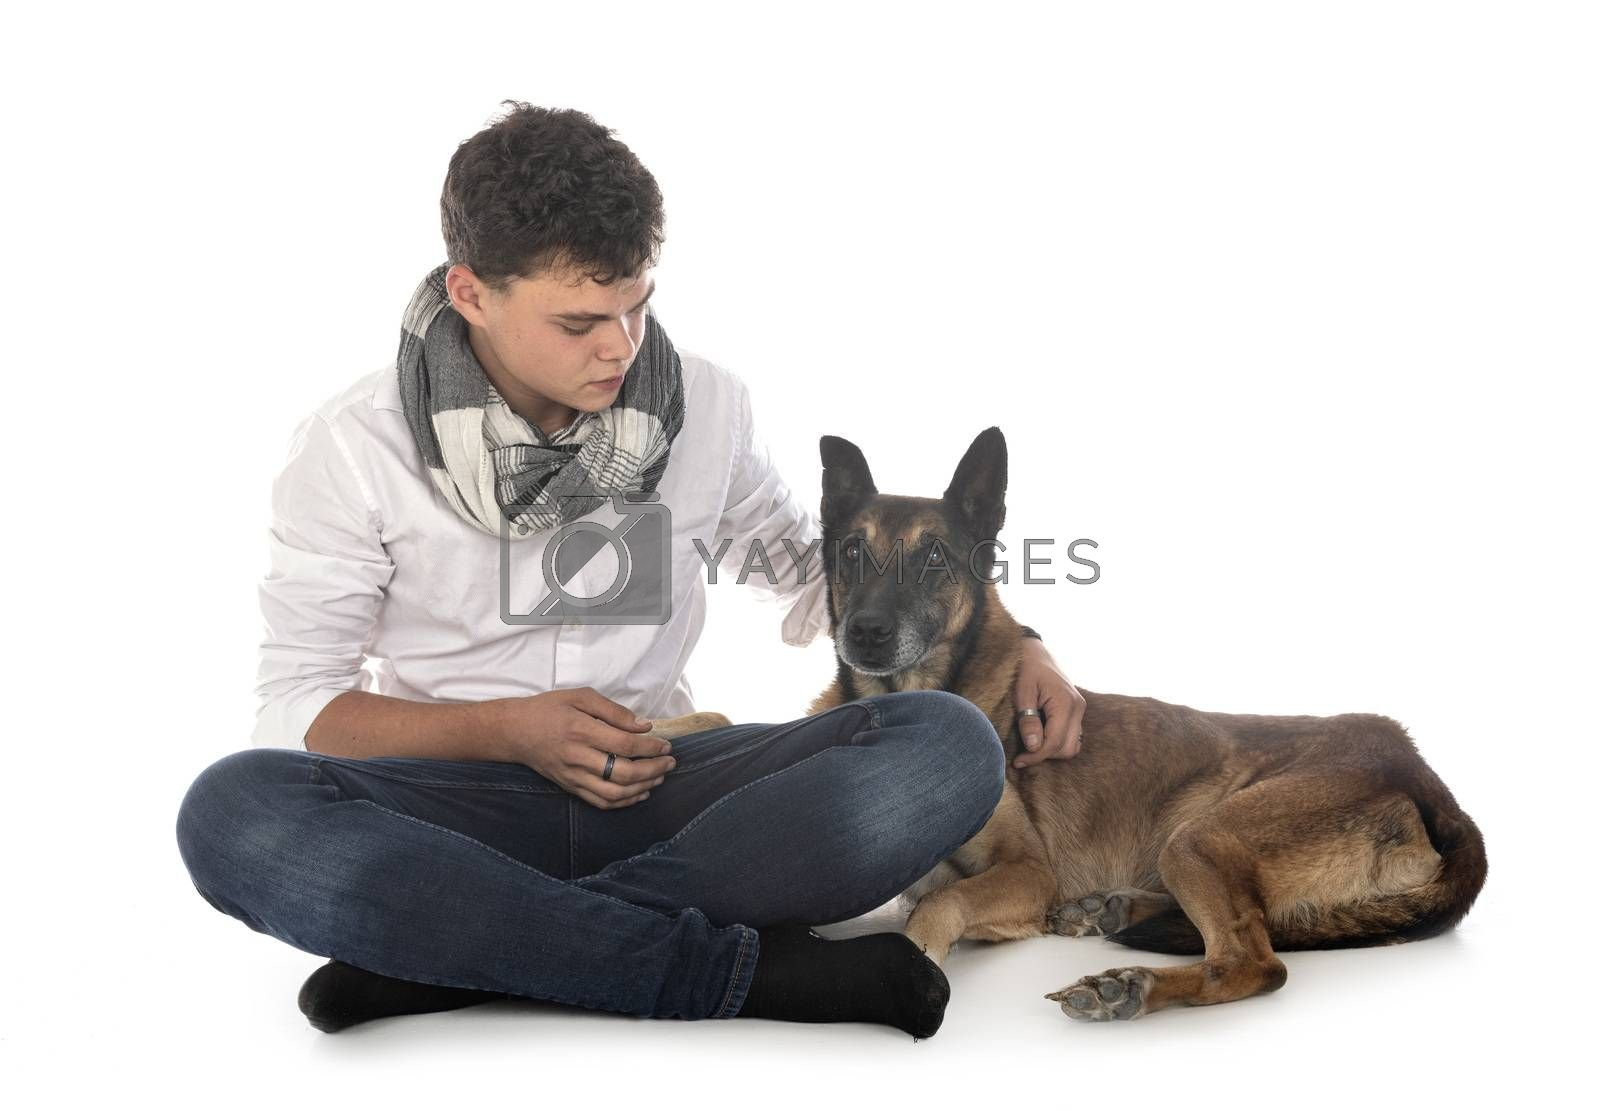 old belgian shepherd and owner in front of white background